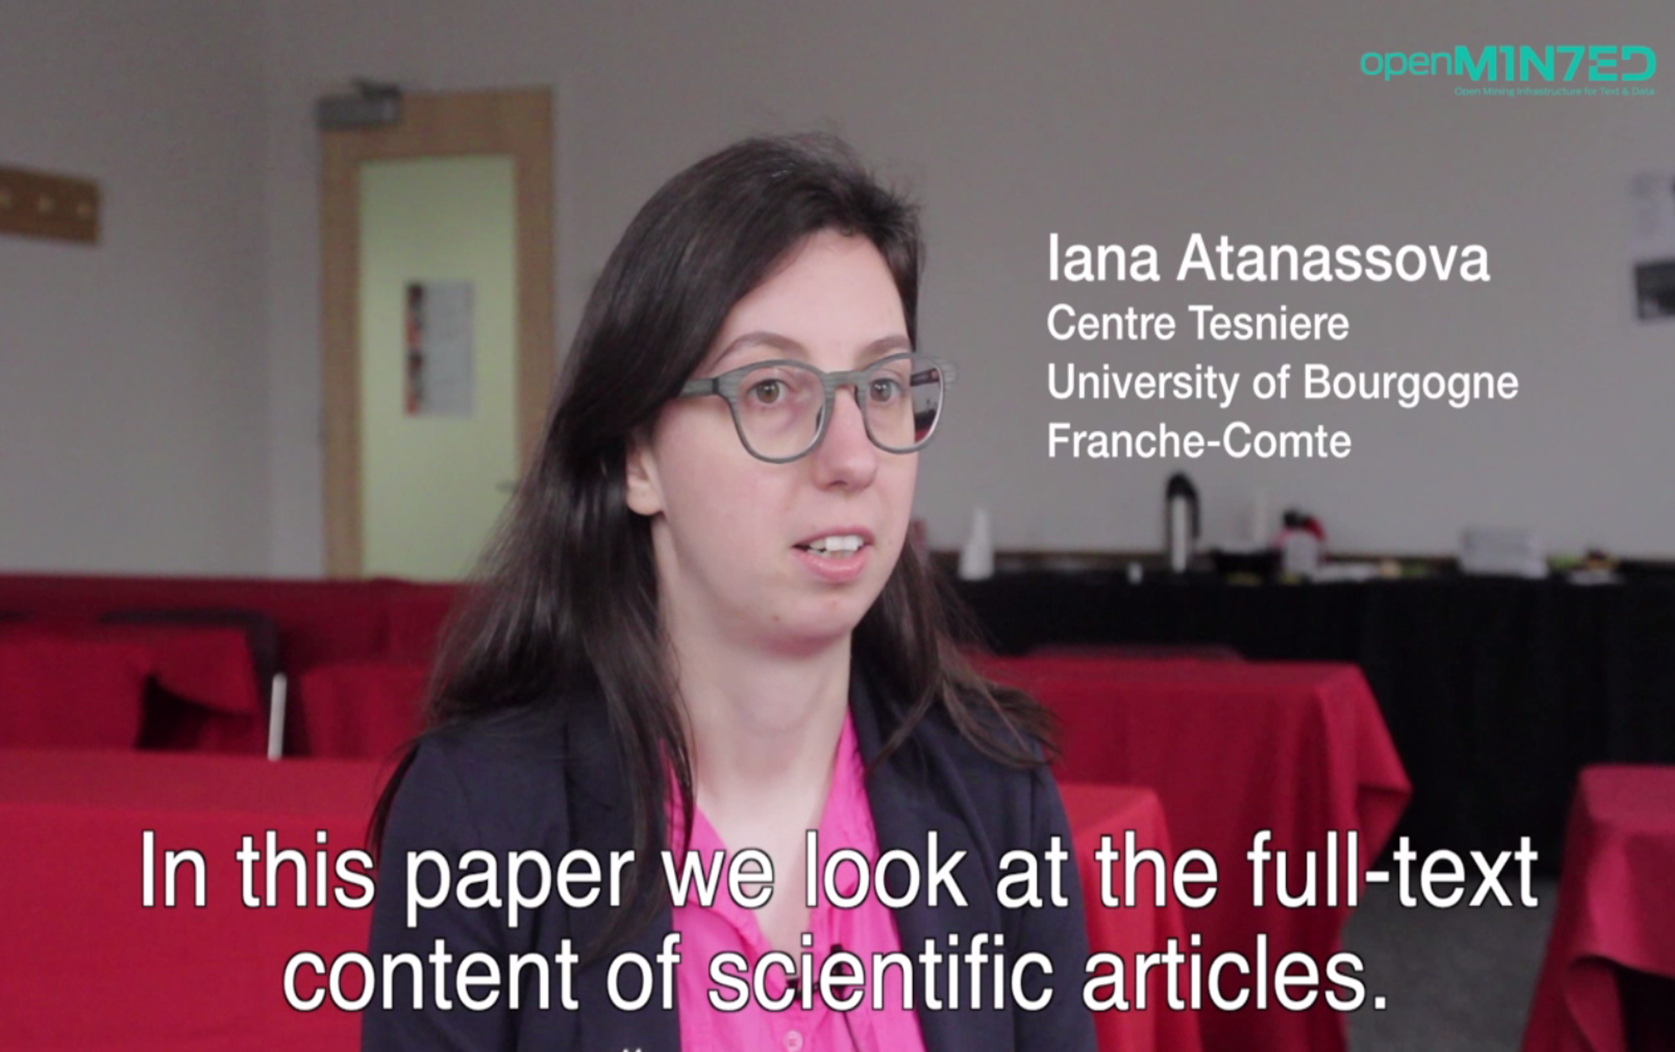 Providing insight into the structure of scientific papers